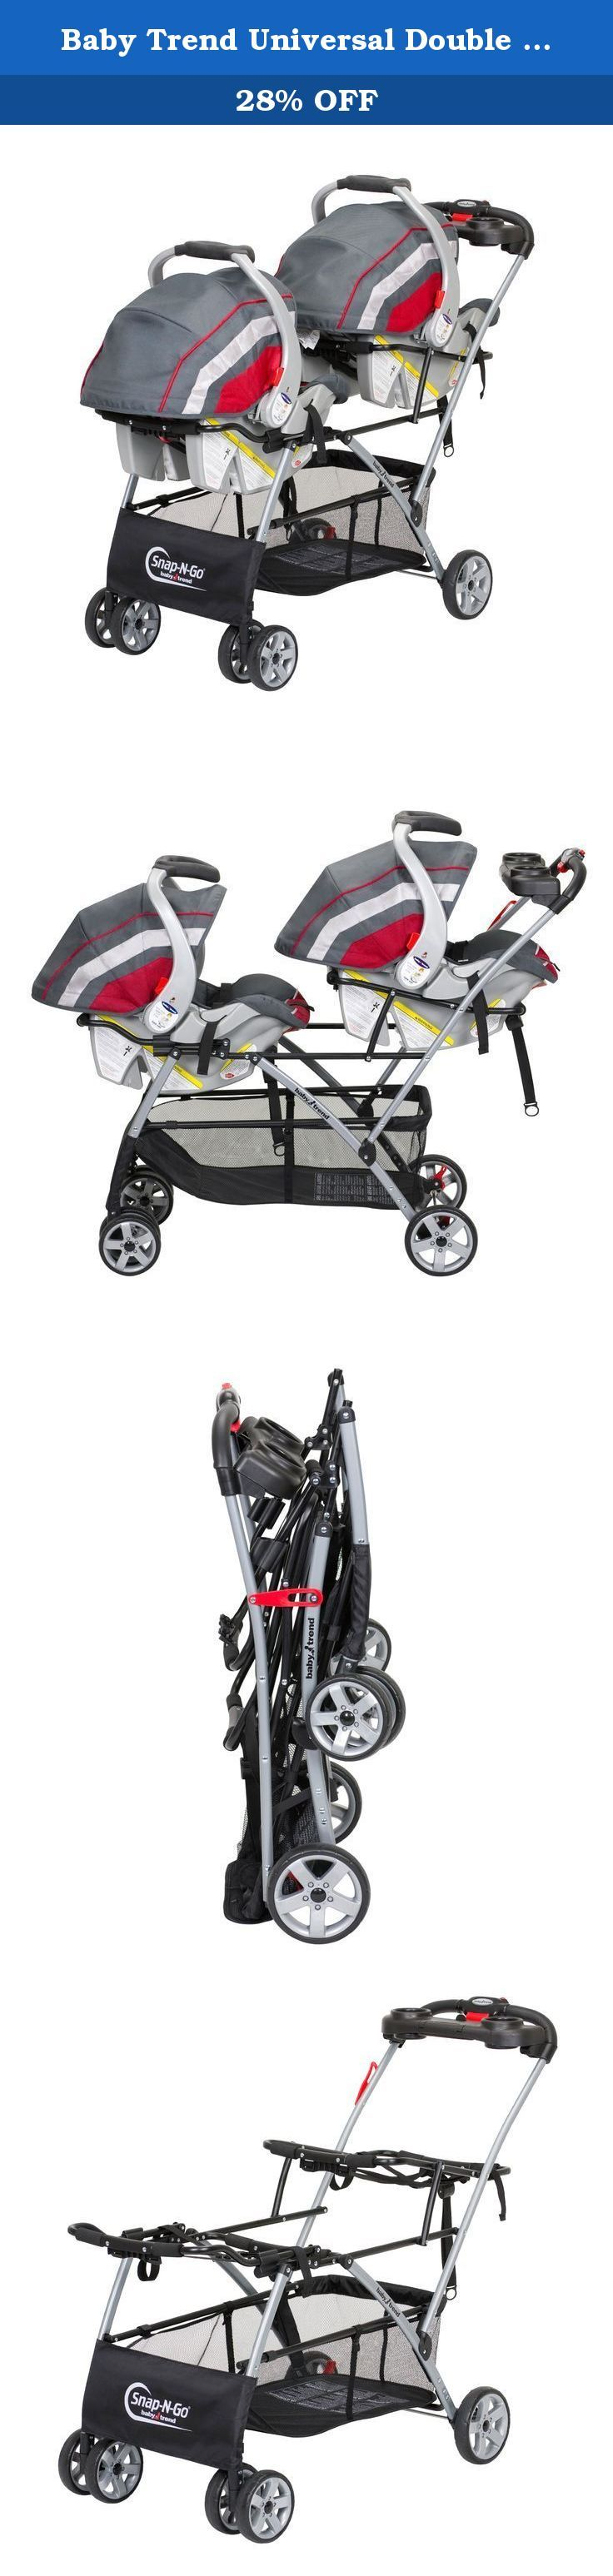 Baby Trend Universal Double SnapNGo Stroller Frame. The